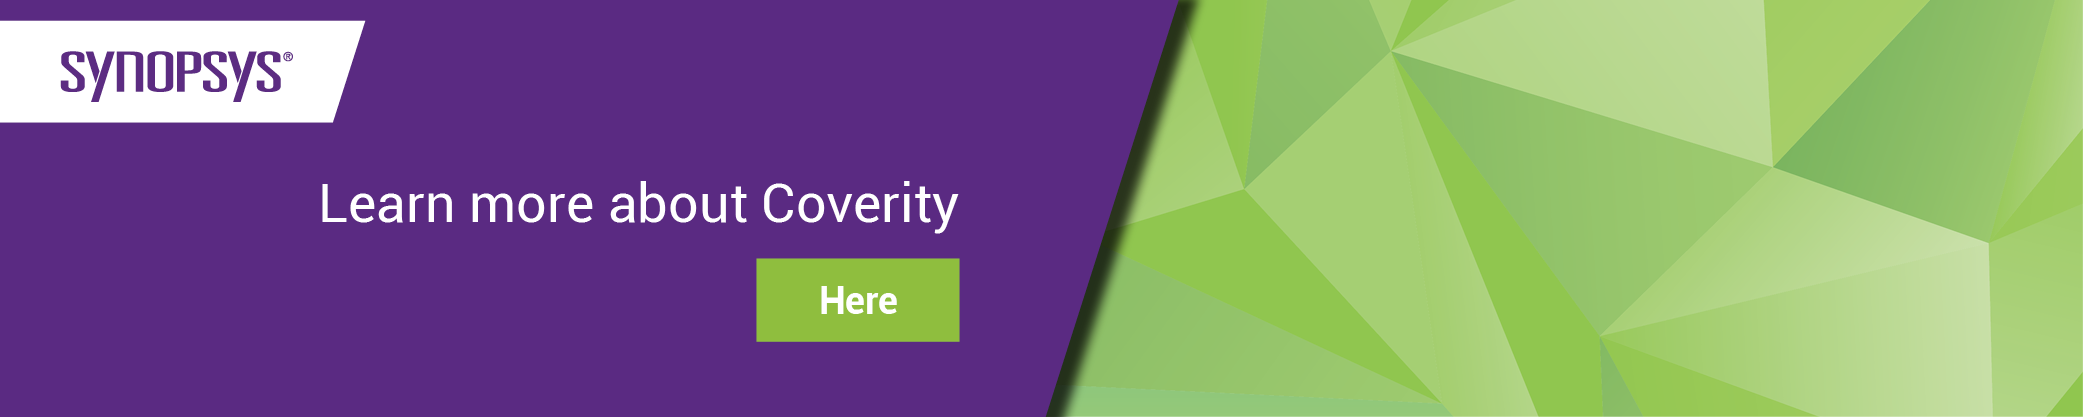 Learn about Coverity | Synopsys